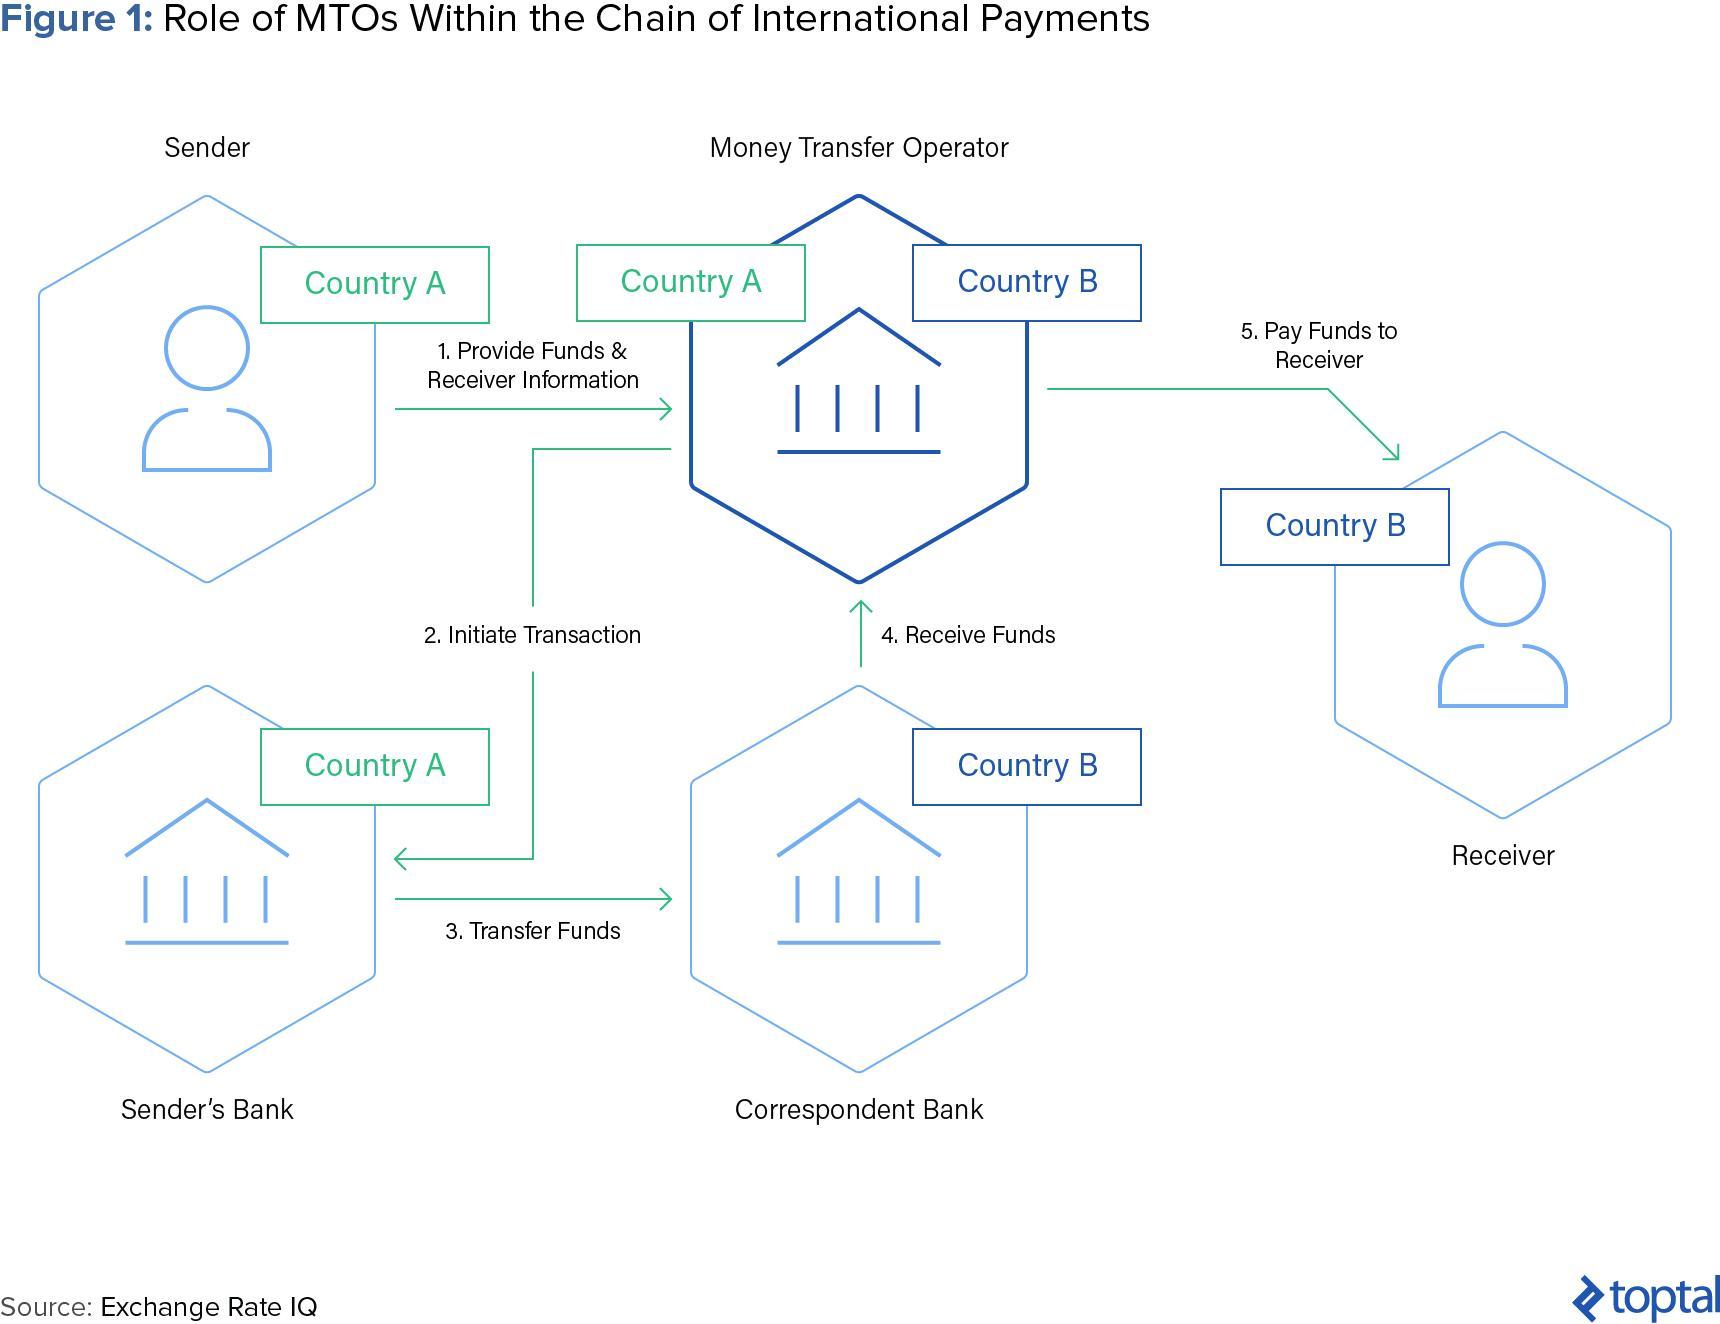 Figure 1: Role of MTOs Within the Chain of International Payments